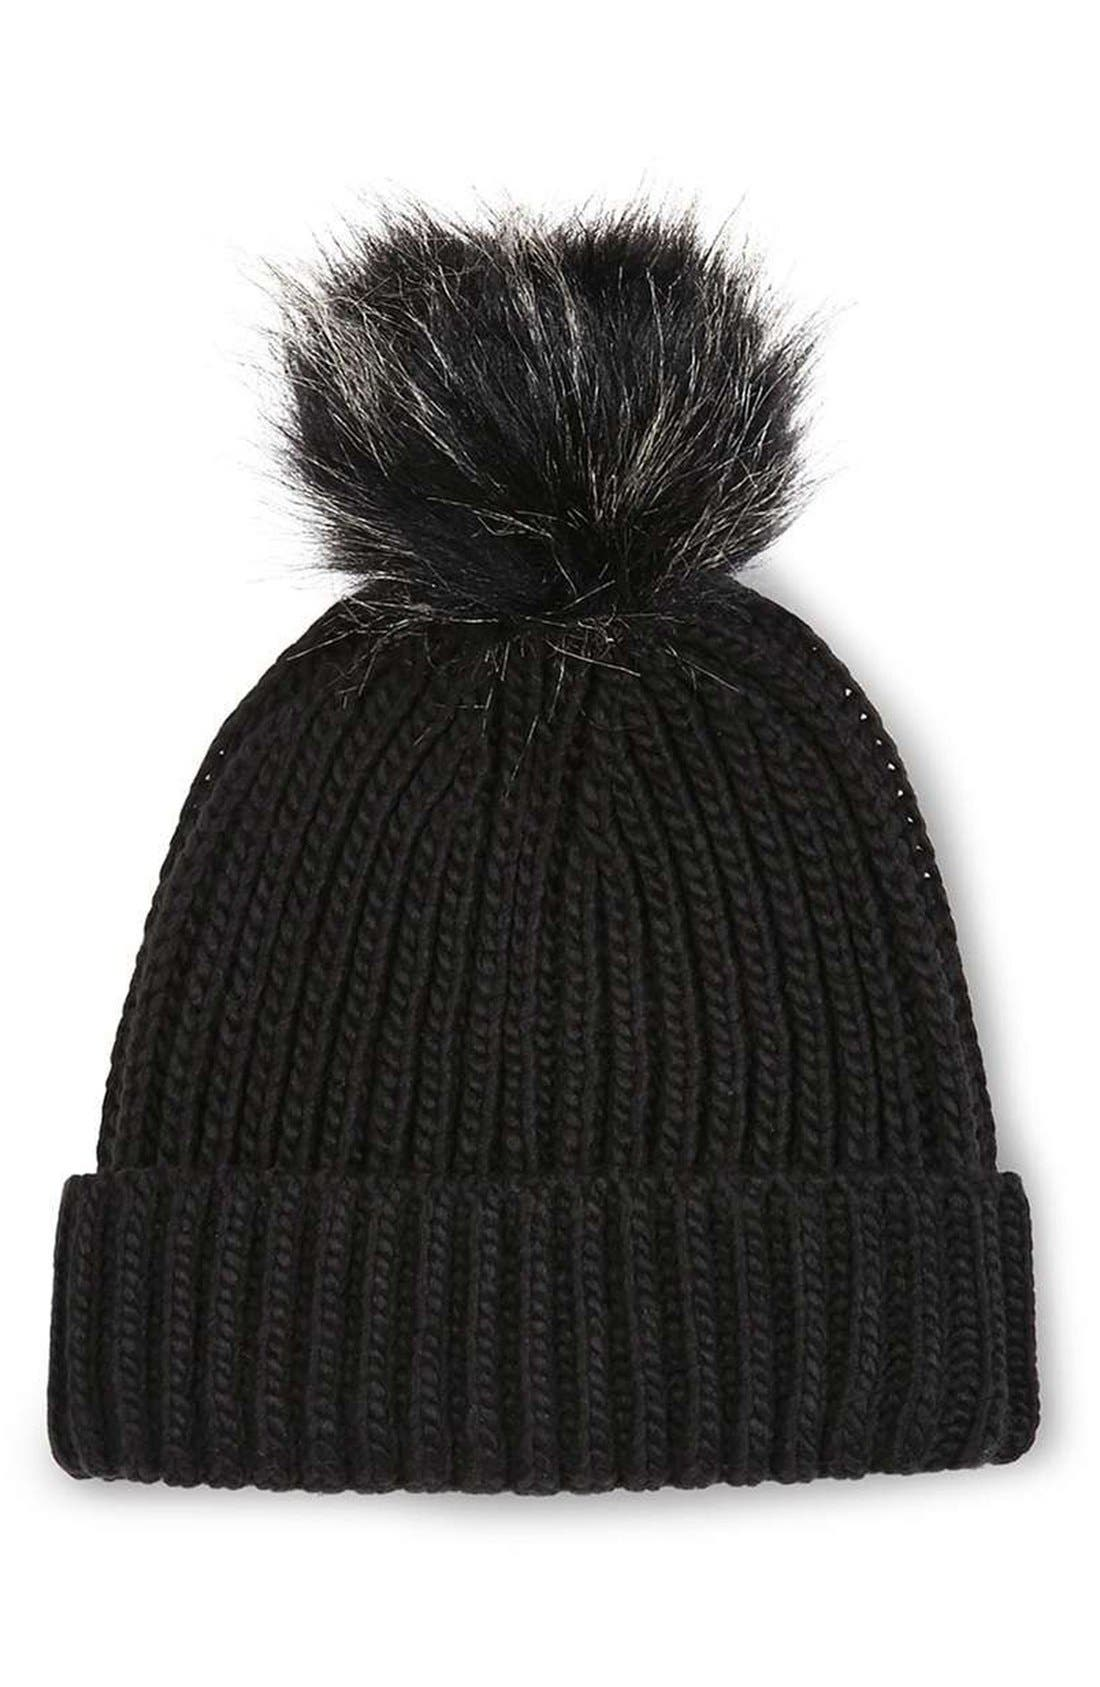 Alternate Image 1 Selected - Topshop Tipped Faux Fur Pom Beanie